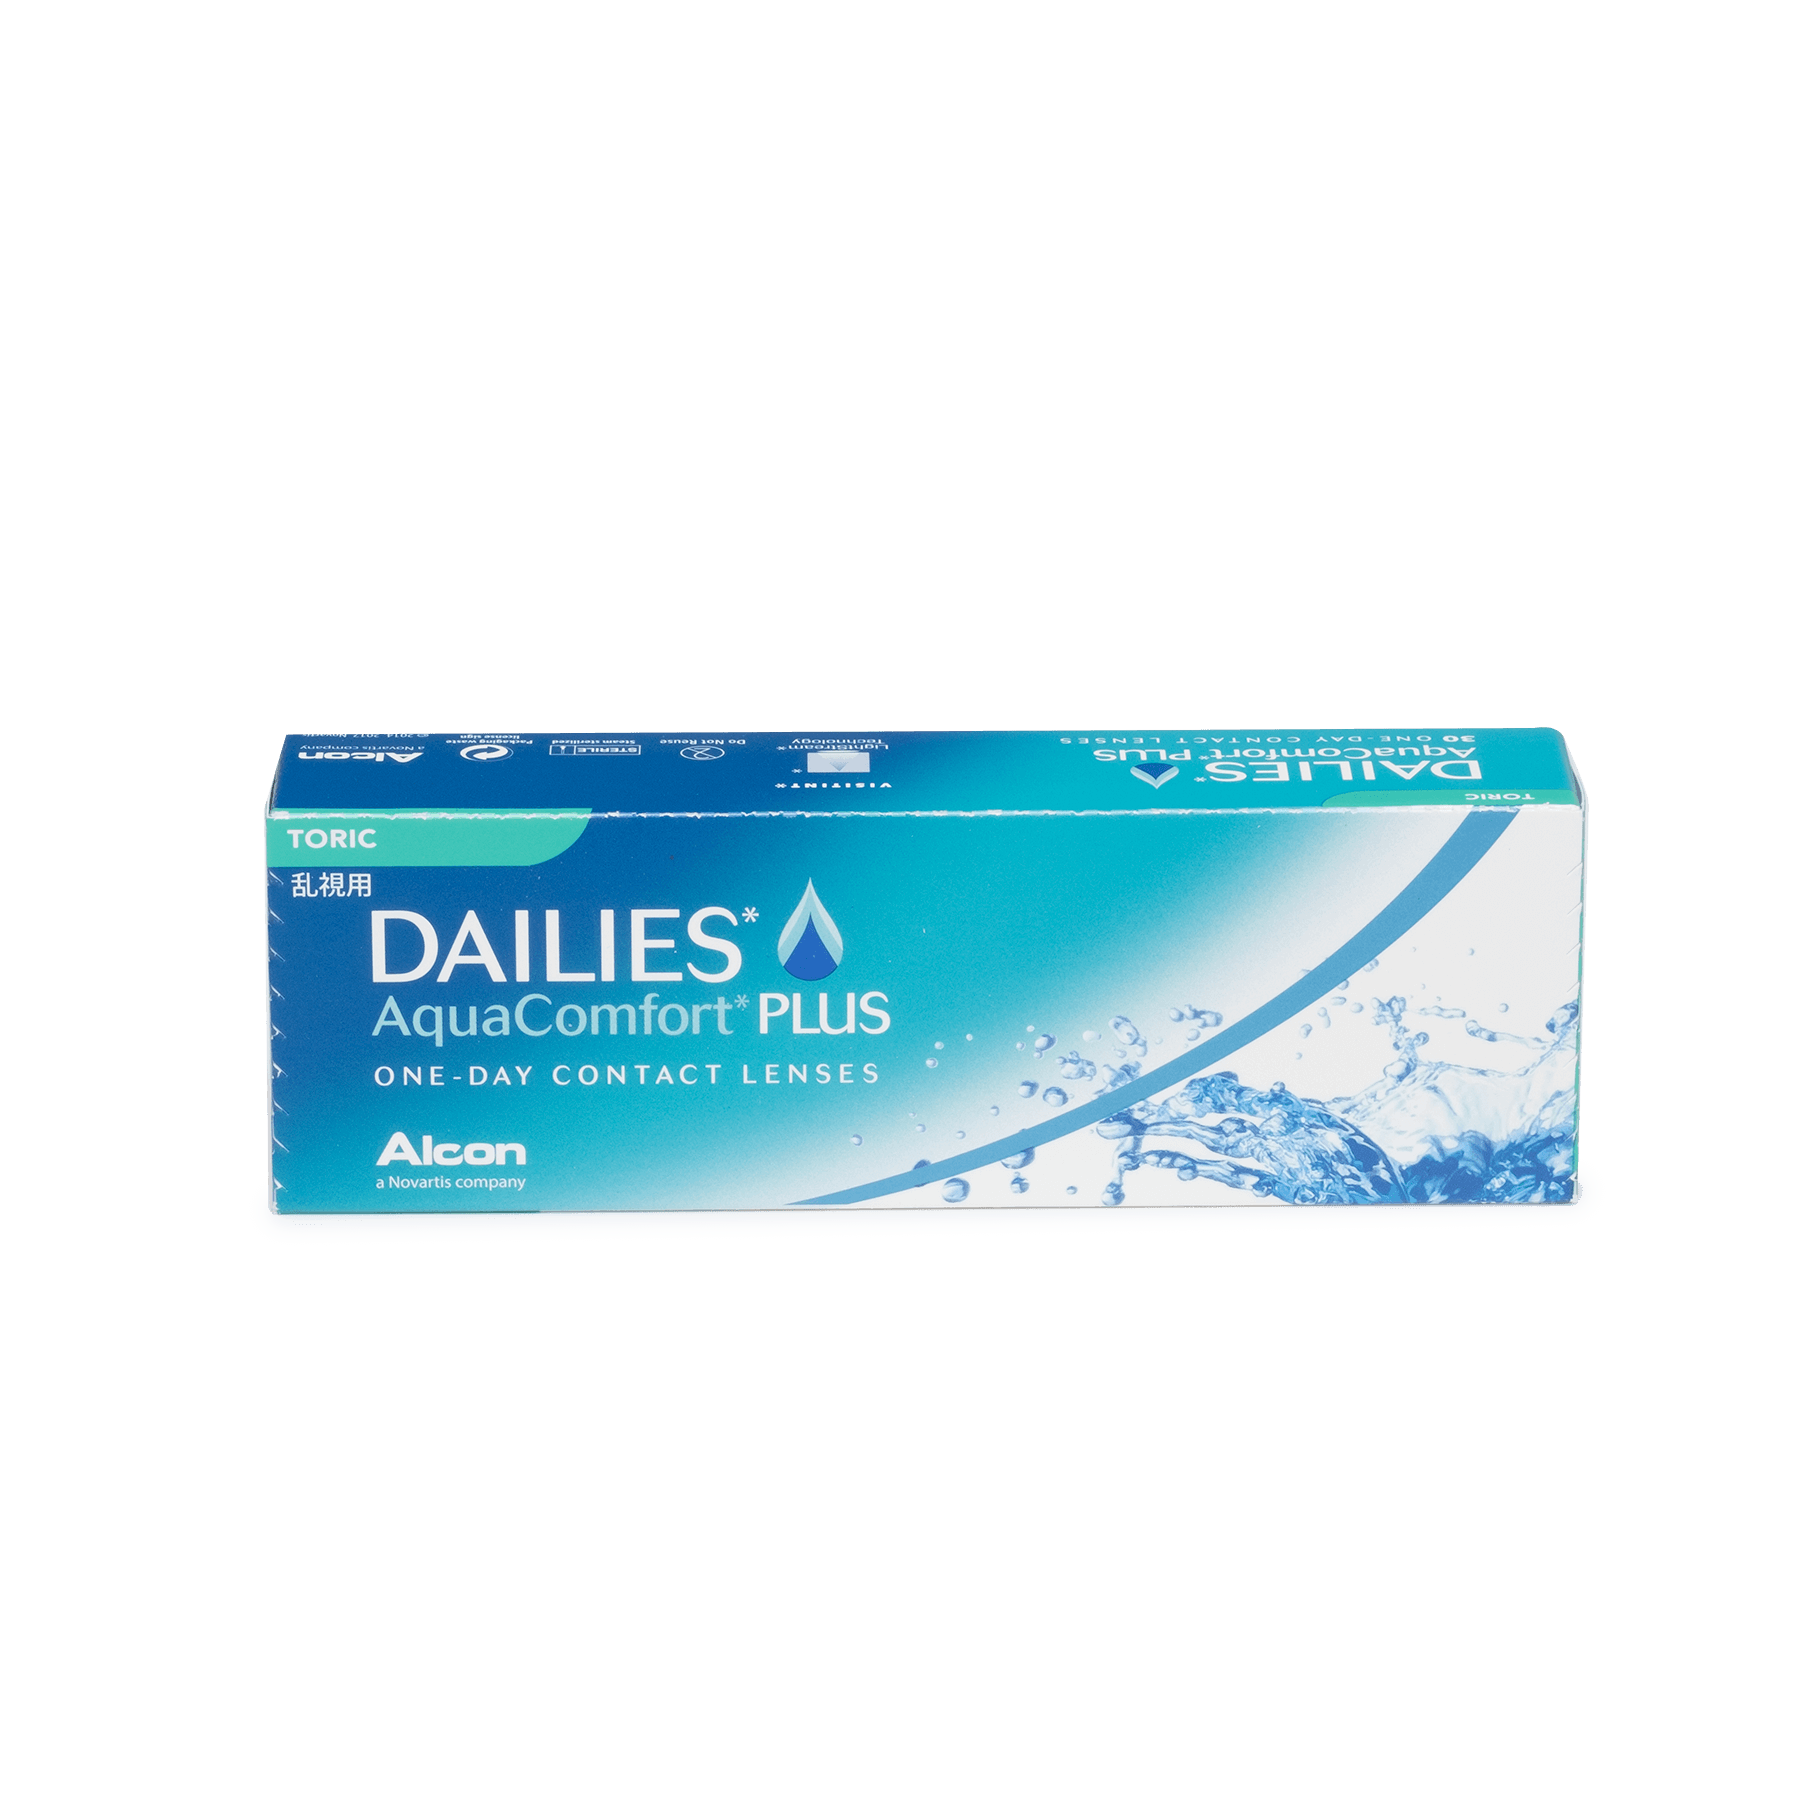 DAILIES AquaComfort Plus Toric 30pk*